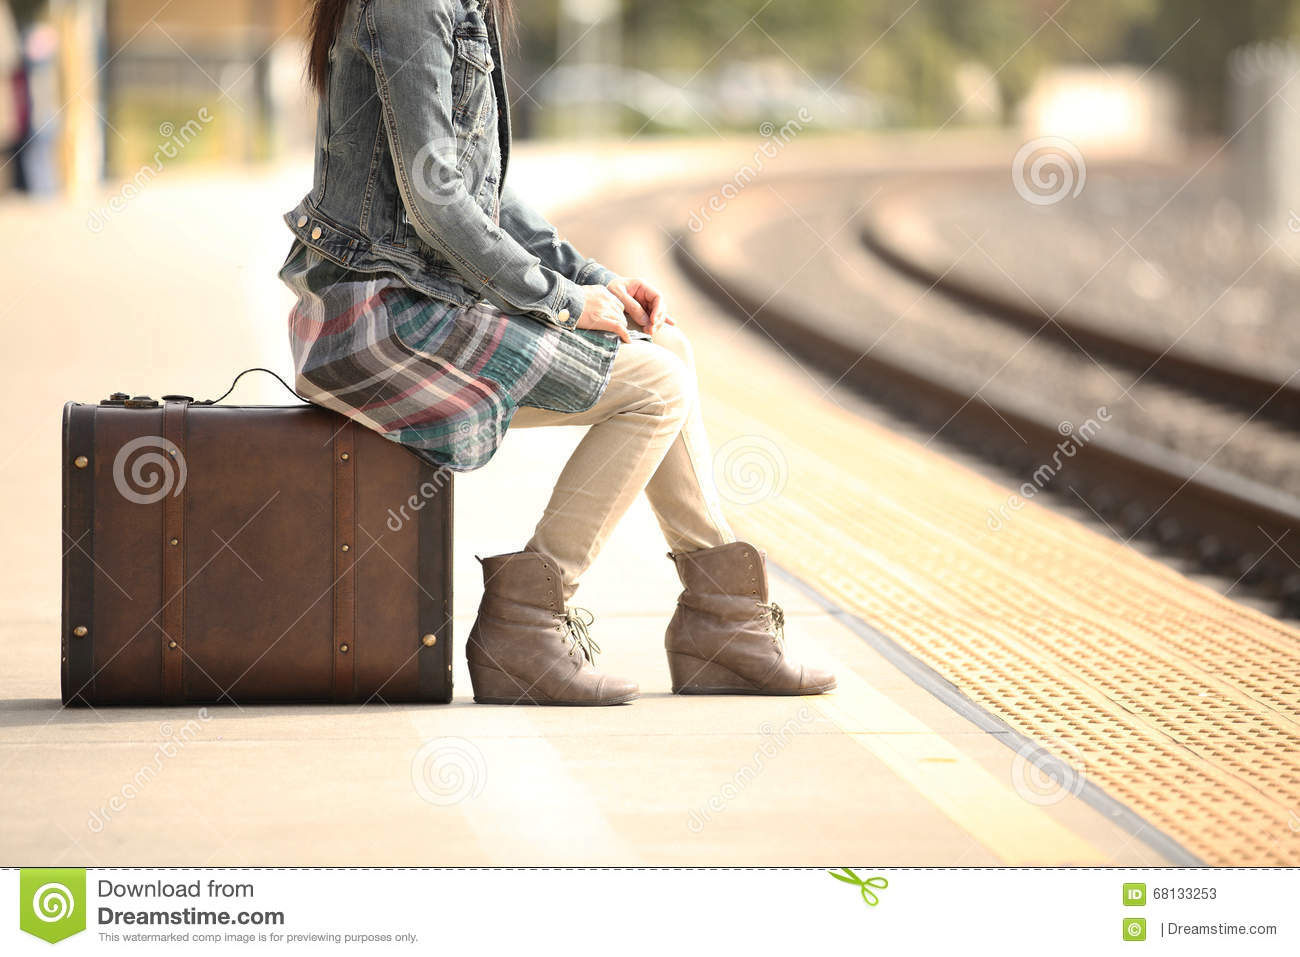 the suitcase lady Greetings and welcome the suitcase lady blog is now in its eleventh year i fully intend to keep following the wise words of author diane ackerman.